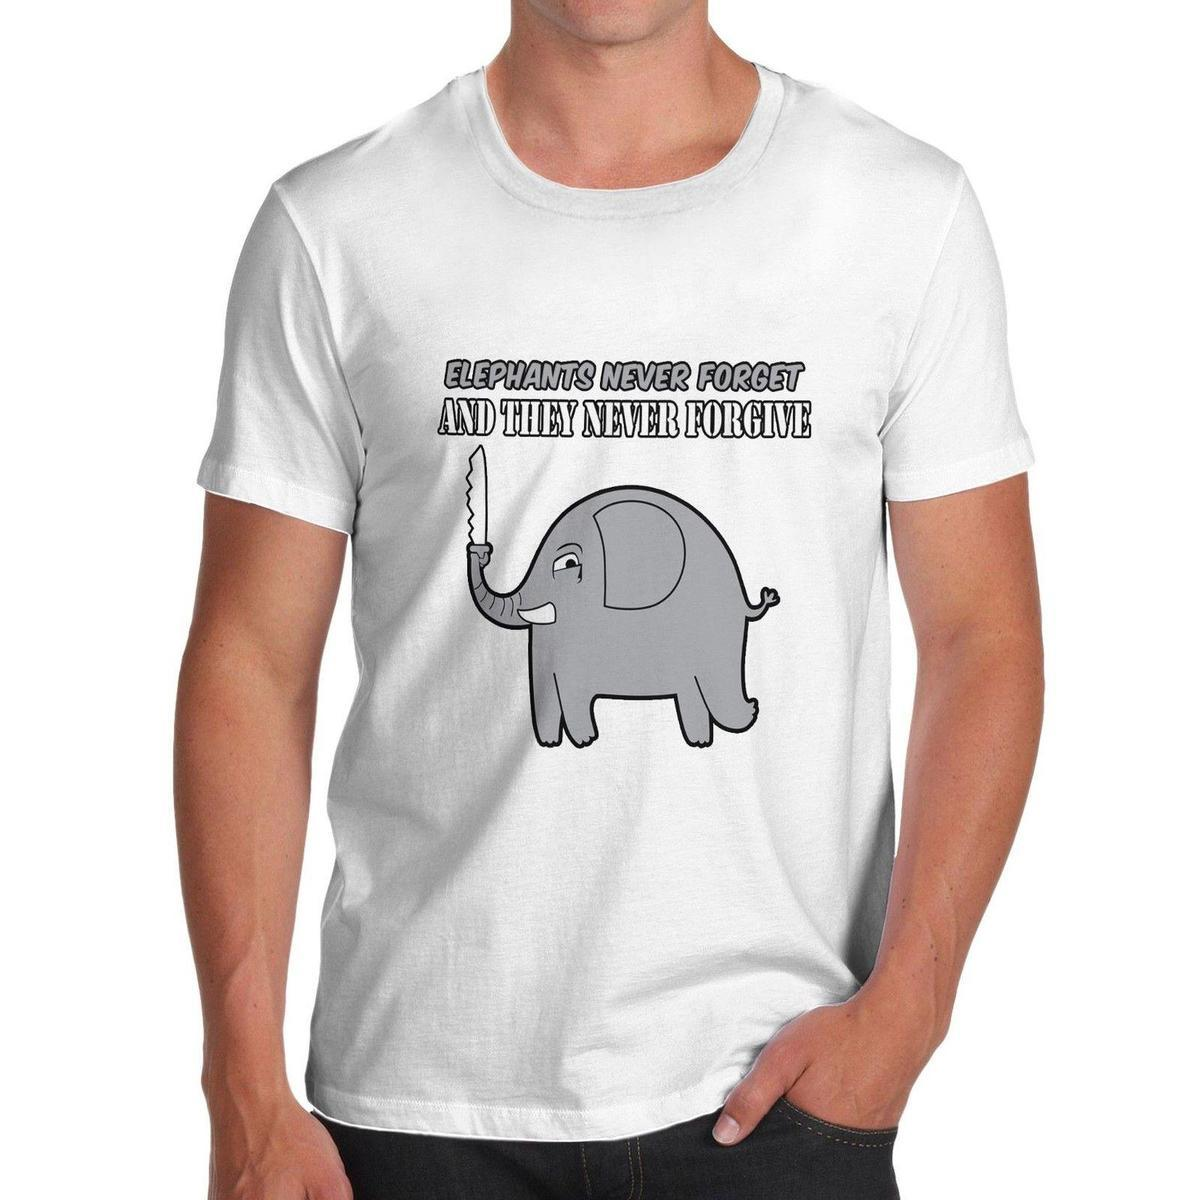 7eaaf5ab Twisted Envy Men's Elephants Never Forget And Never Forgive Funny T-Shirt